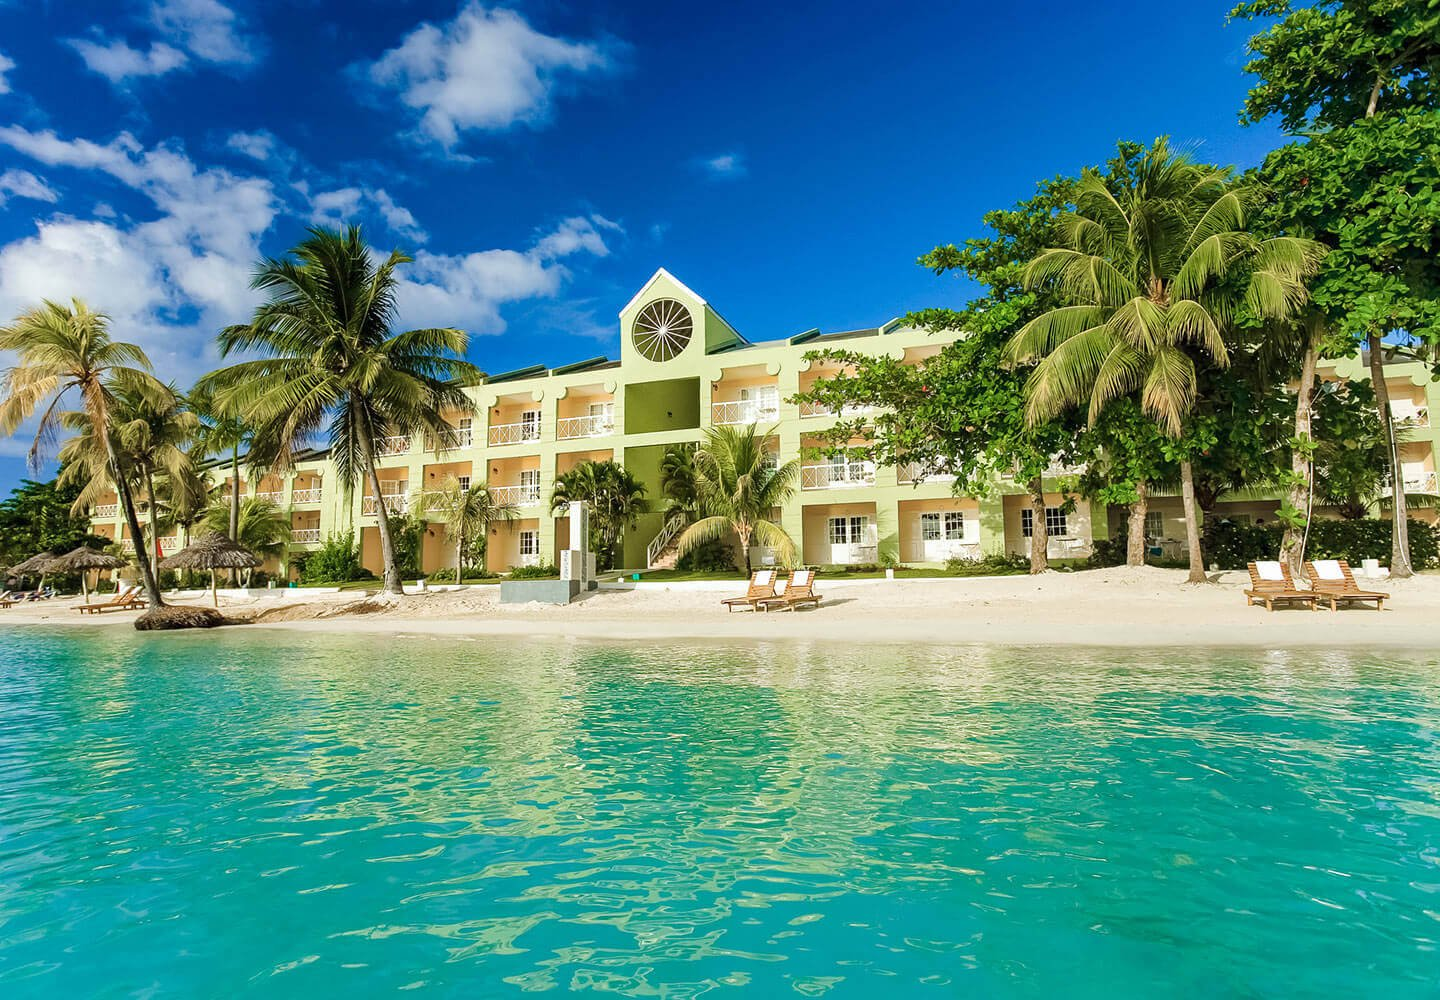 Sandals Negril - Jamaica Vacations